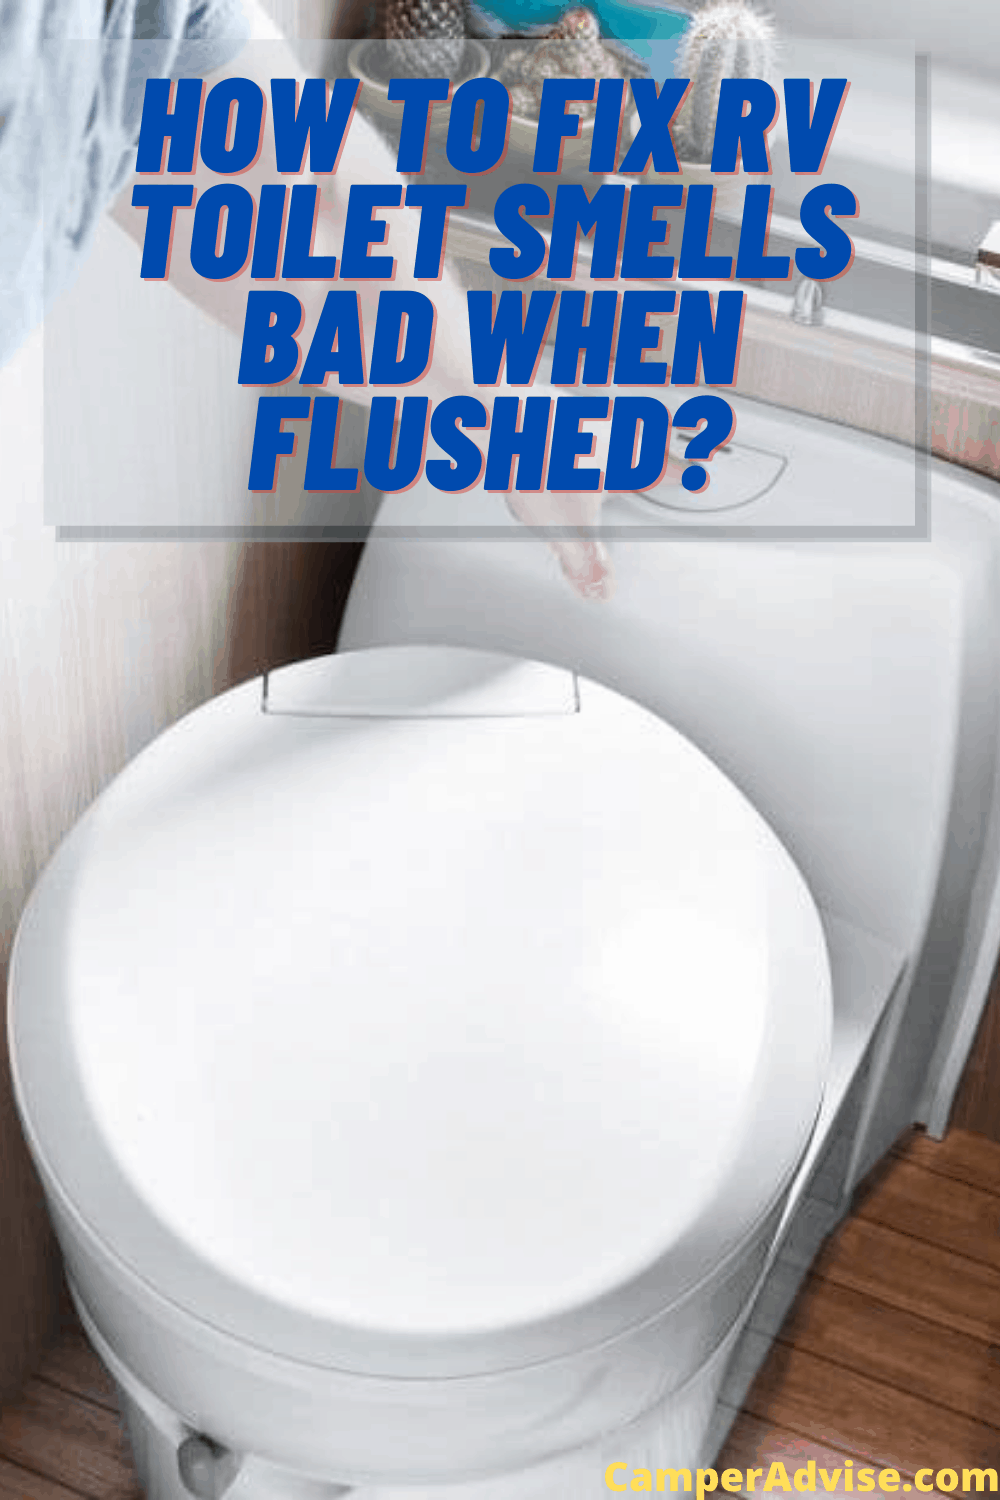 How to Fix RV Toilet Smells Bad When Flushed? (2020)